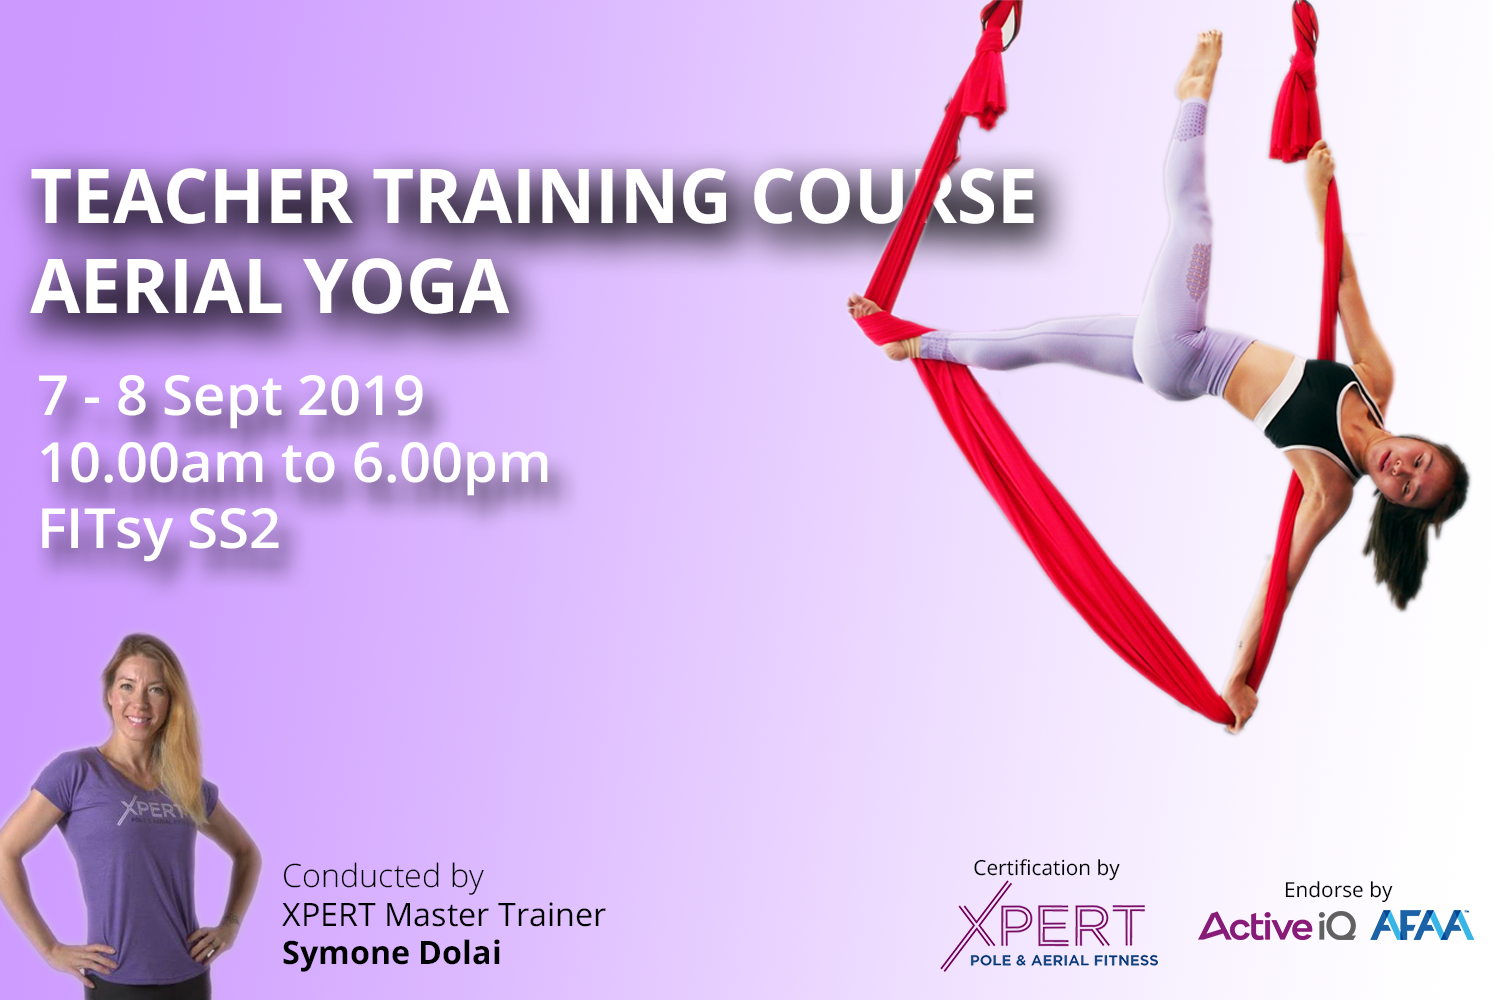 Aerial Hammock / Yoga / Fitness Teacher Training Course - Your journey to become instructor start here - Sept 2019 - FITsy